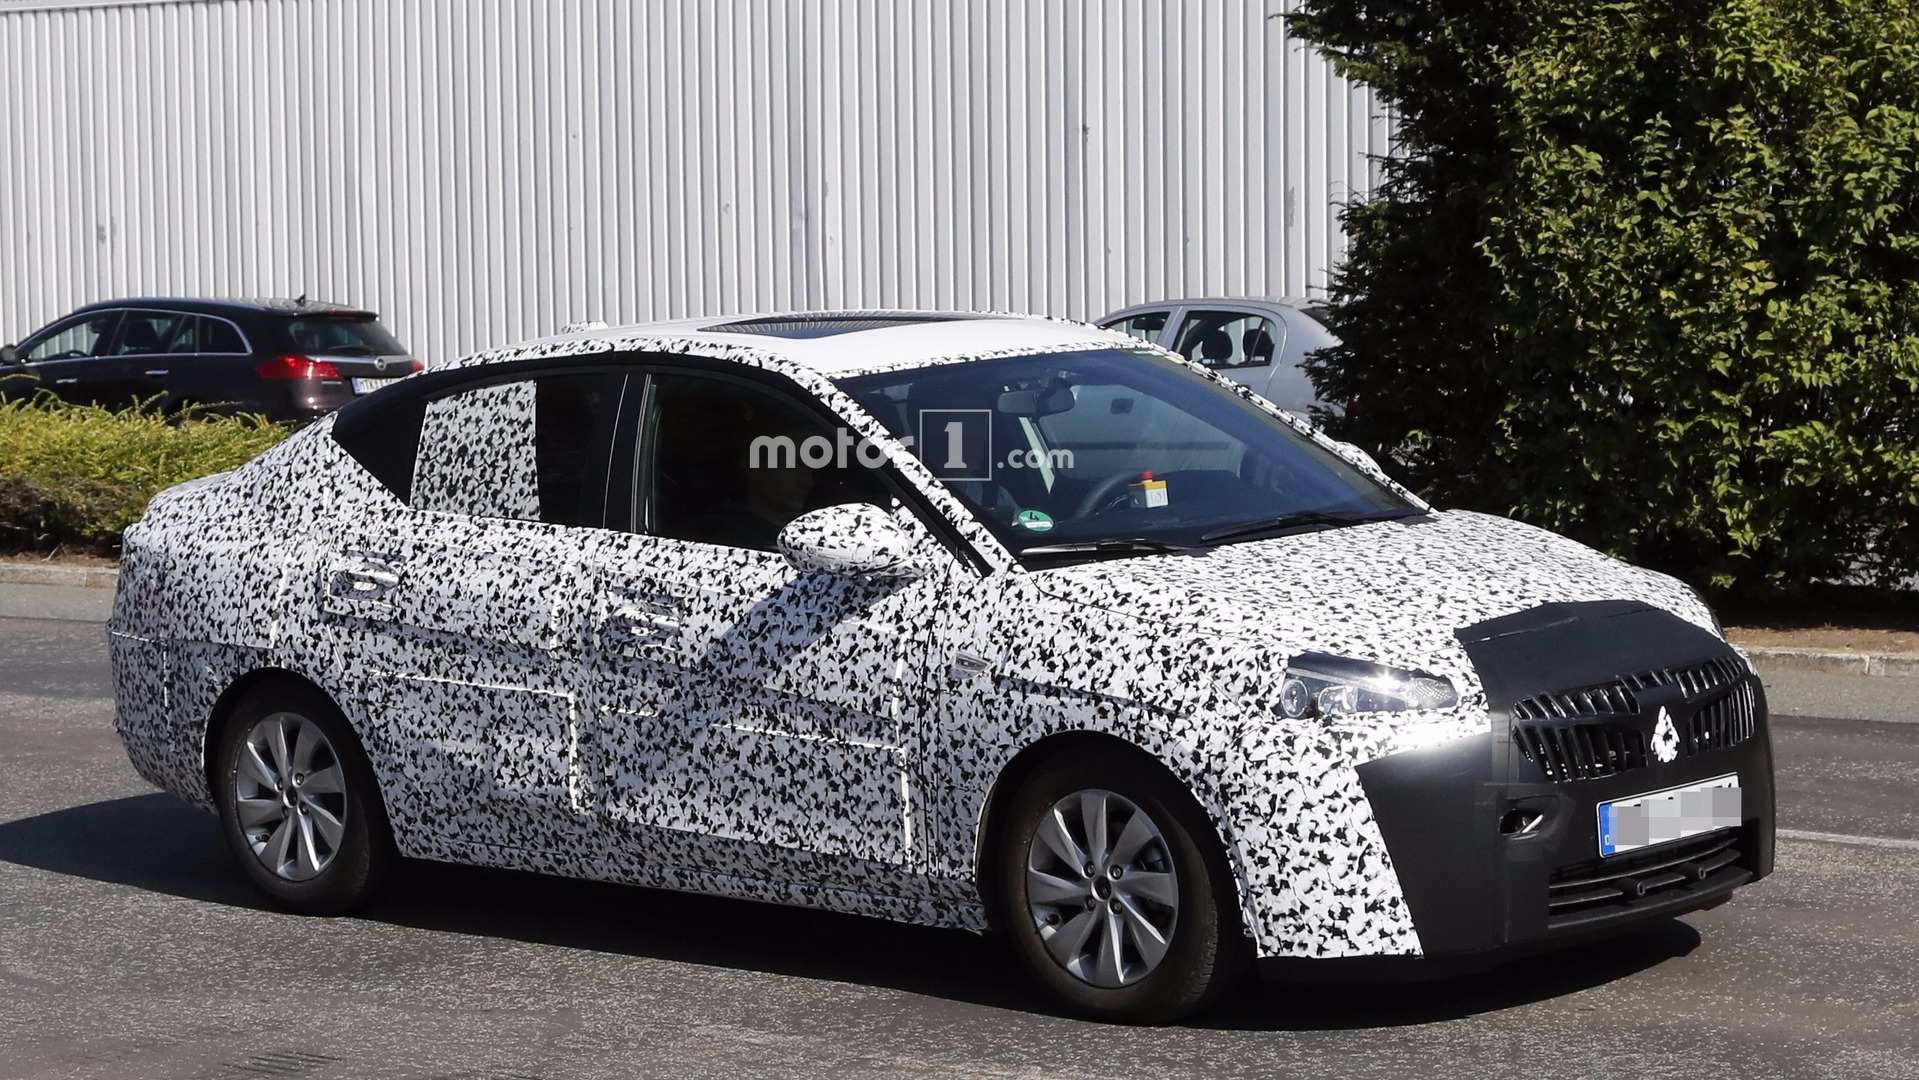 Opel Corsa Sedan Or Equivalent Buick Chevy Spotted